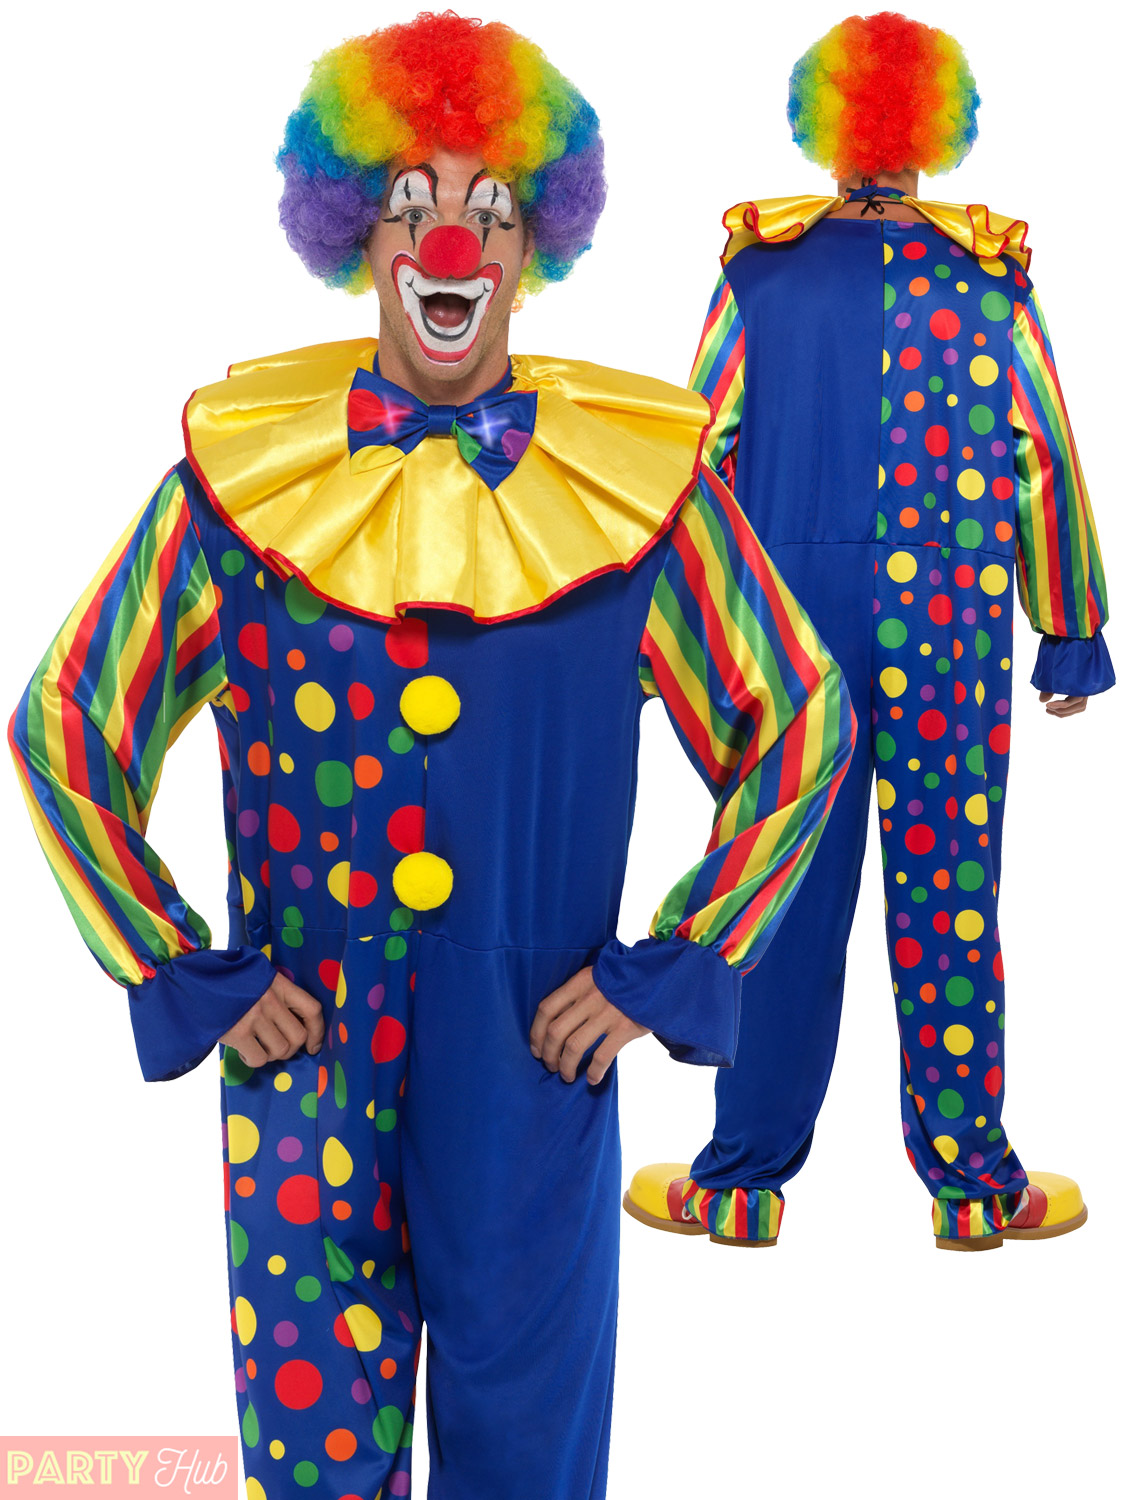 Comedy Circus Clown Costume Halloween Christmas Party Adult Unisex Fancy Dress